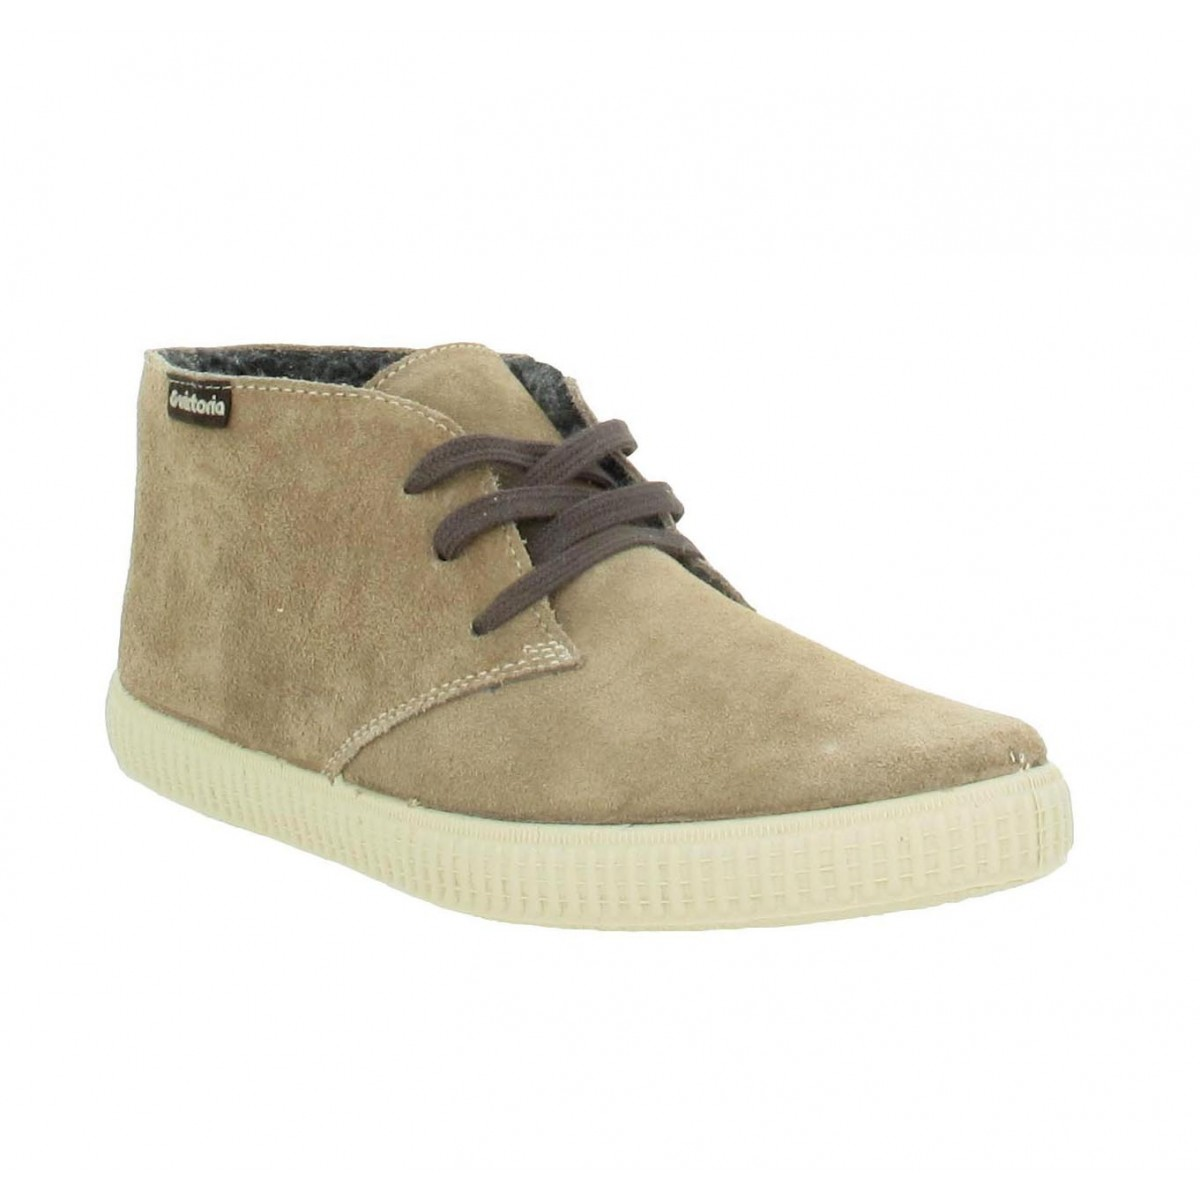 Baskets VICTORIA 6788 velours Femme Taupe